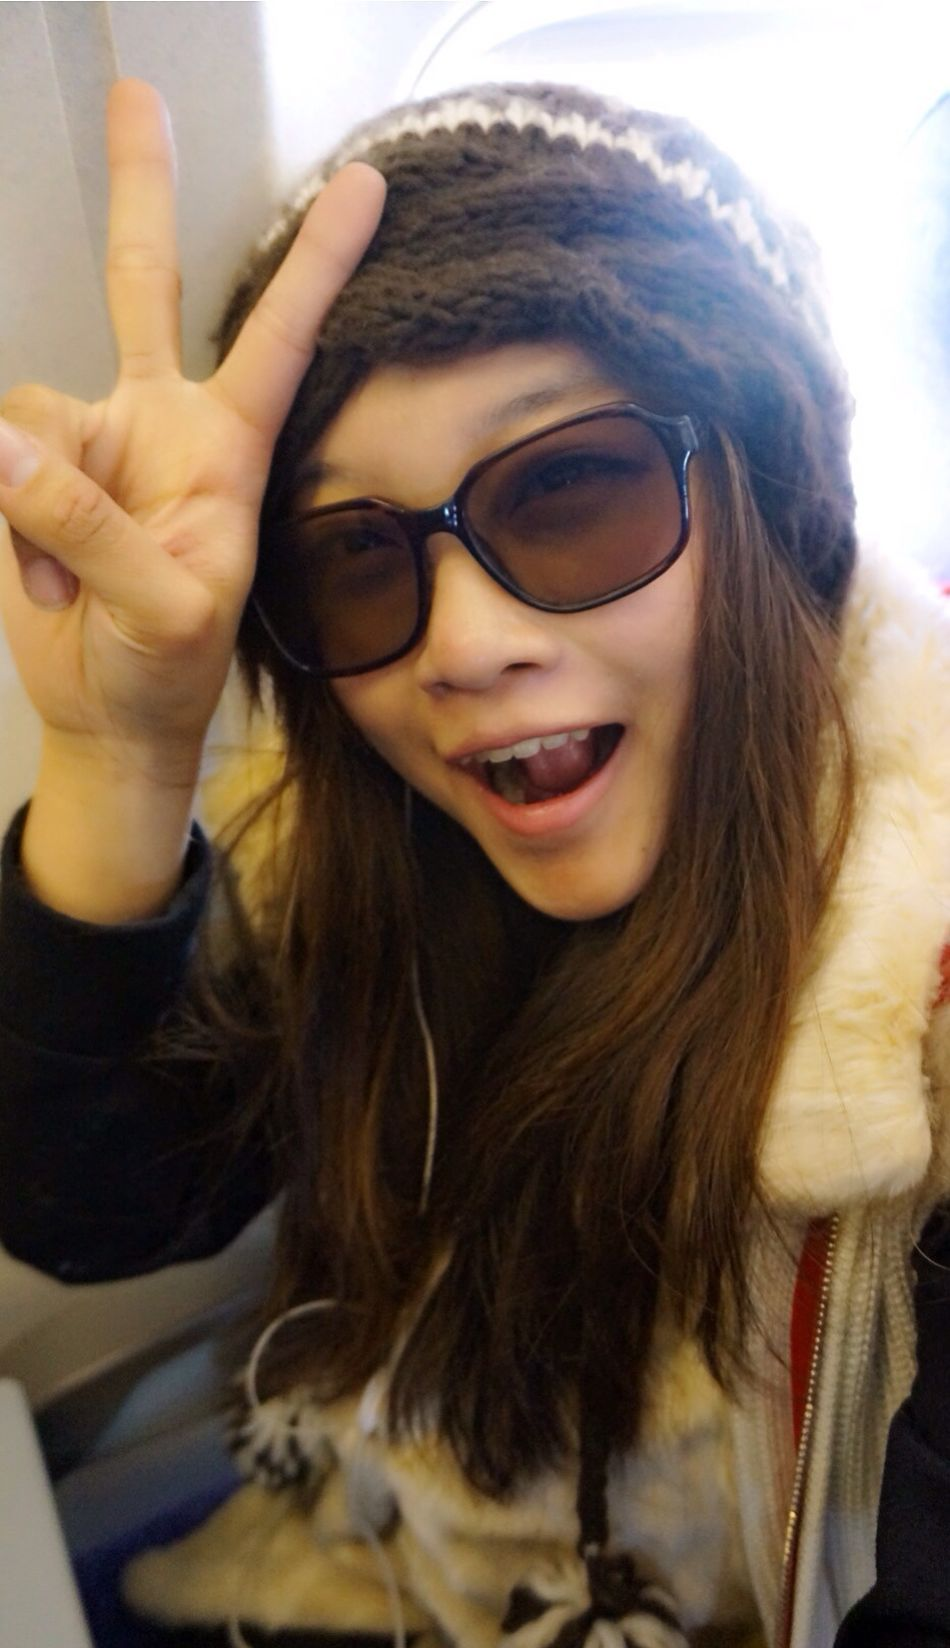 Coming back to the campus. The end of my Beijing trip~ see u